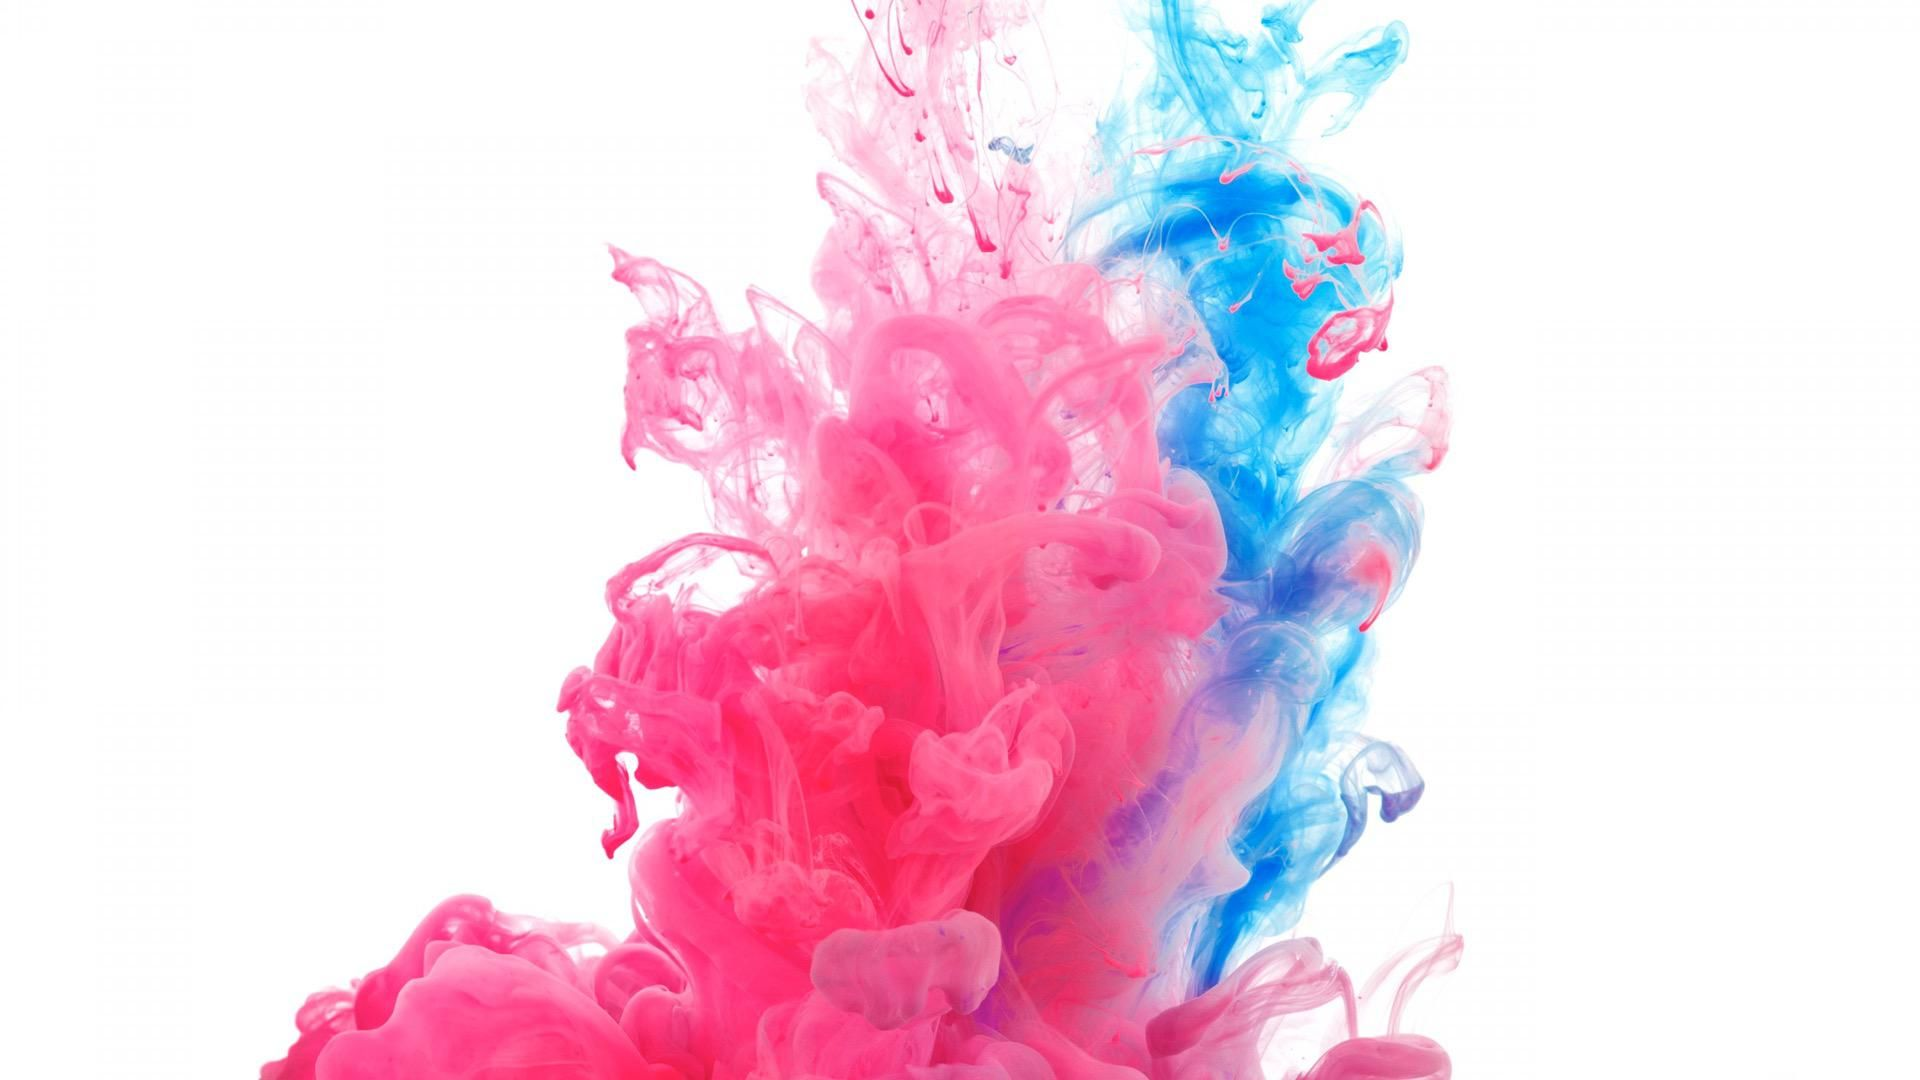 Flying Paint flying paint Holi colors Blue wallpapers Color 1920x1080